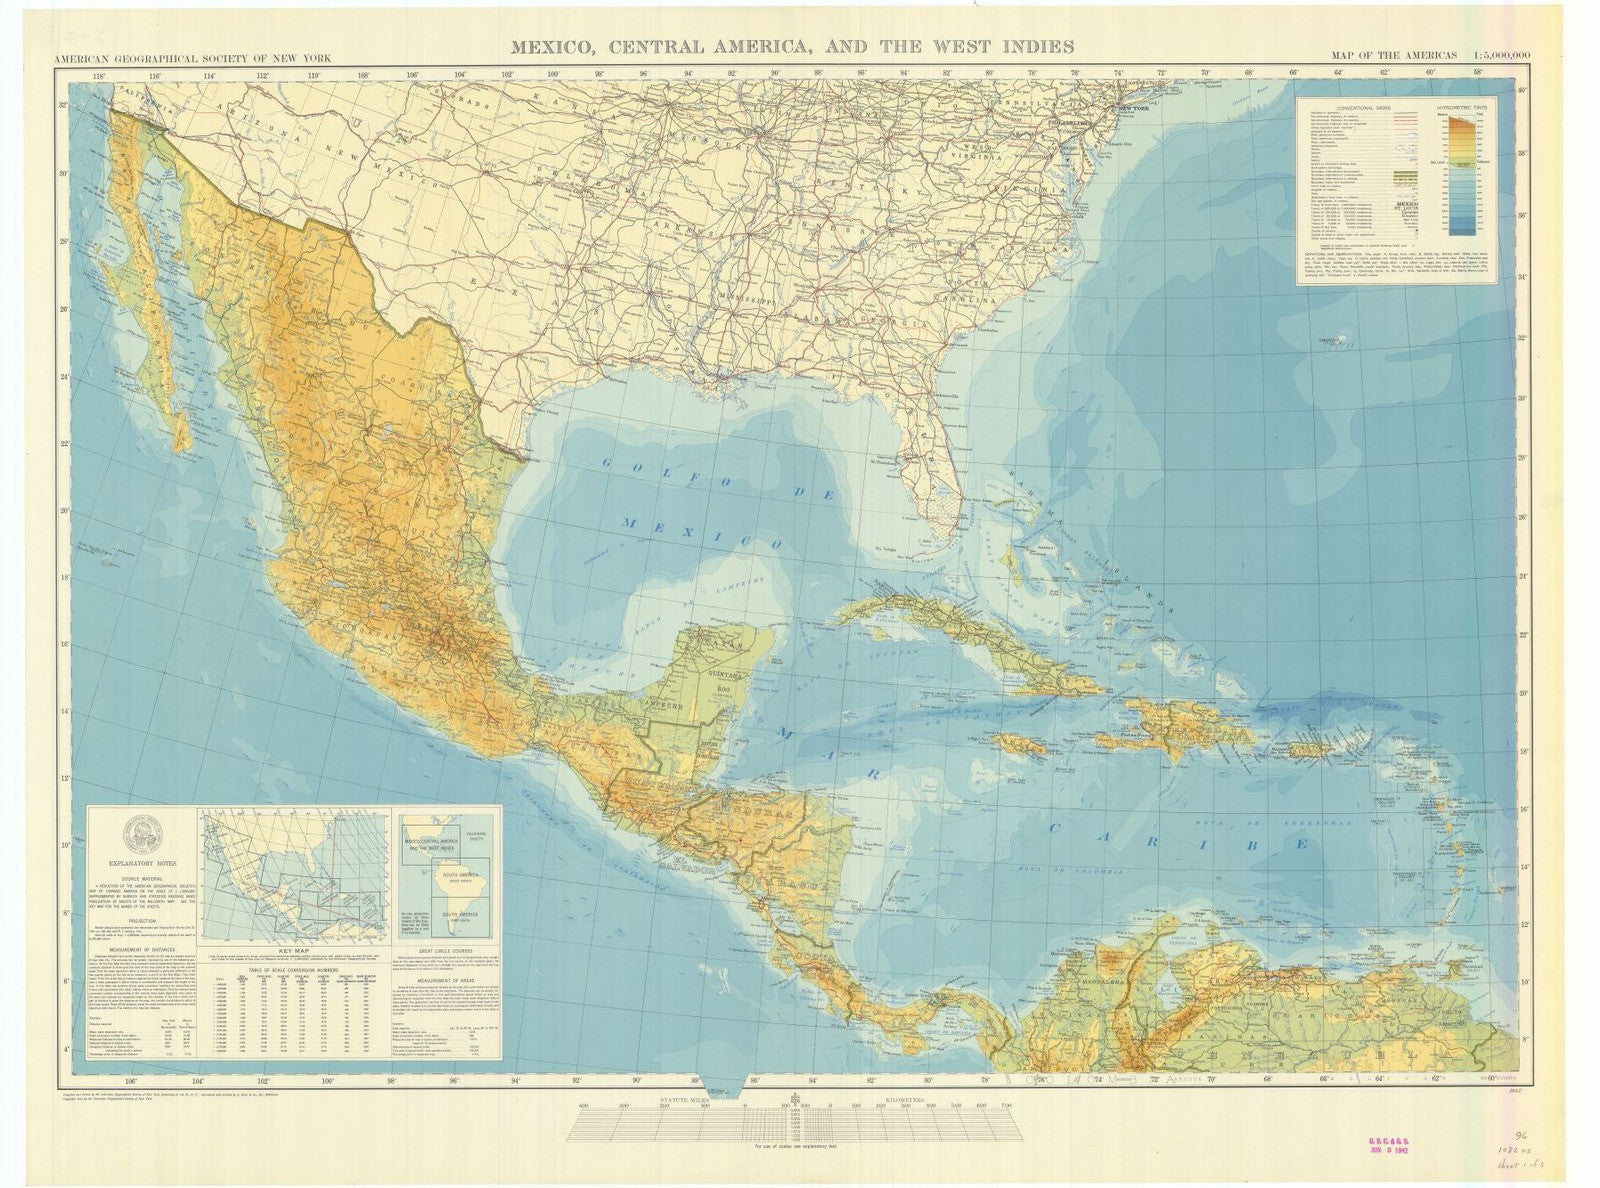 Print Of Map Of The Americas Mexico Central America And The West